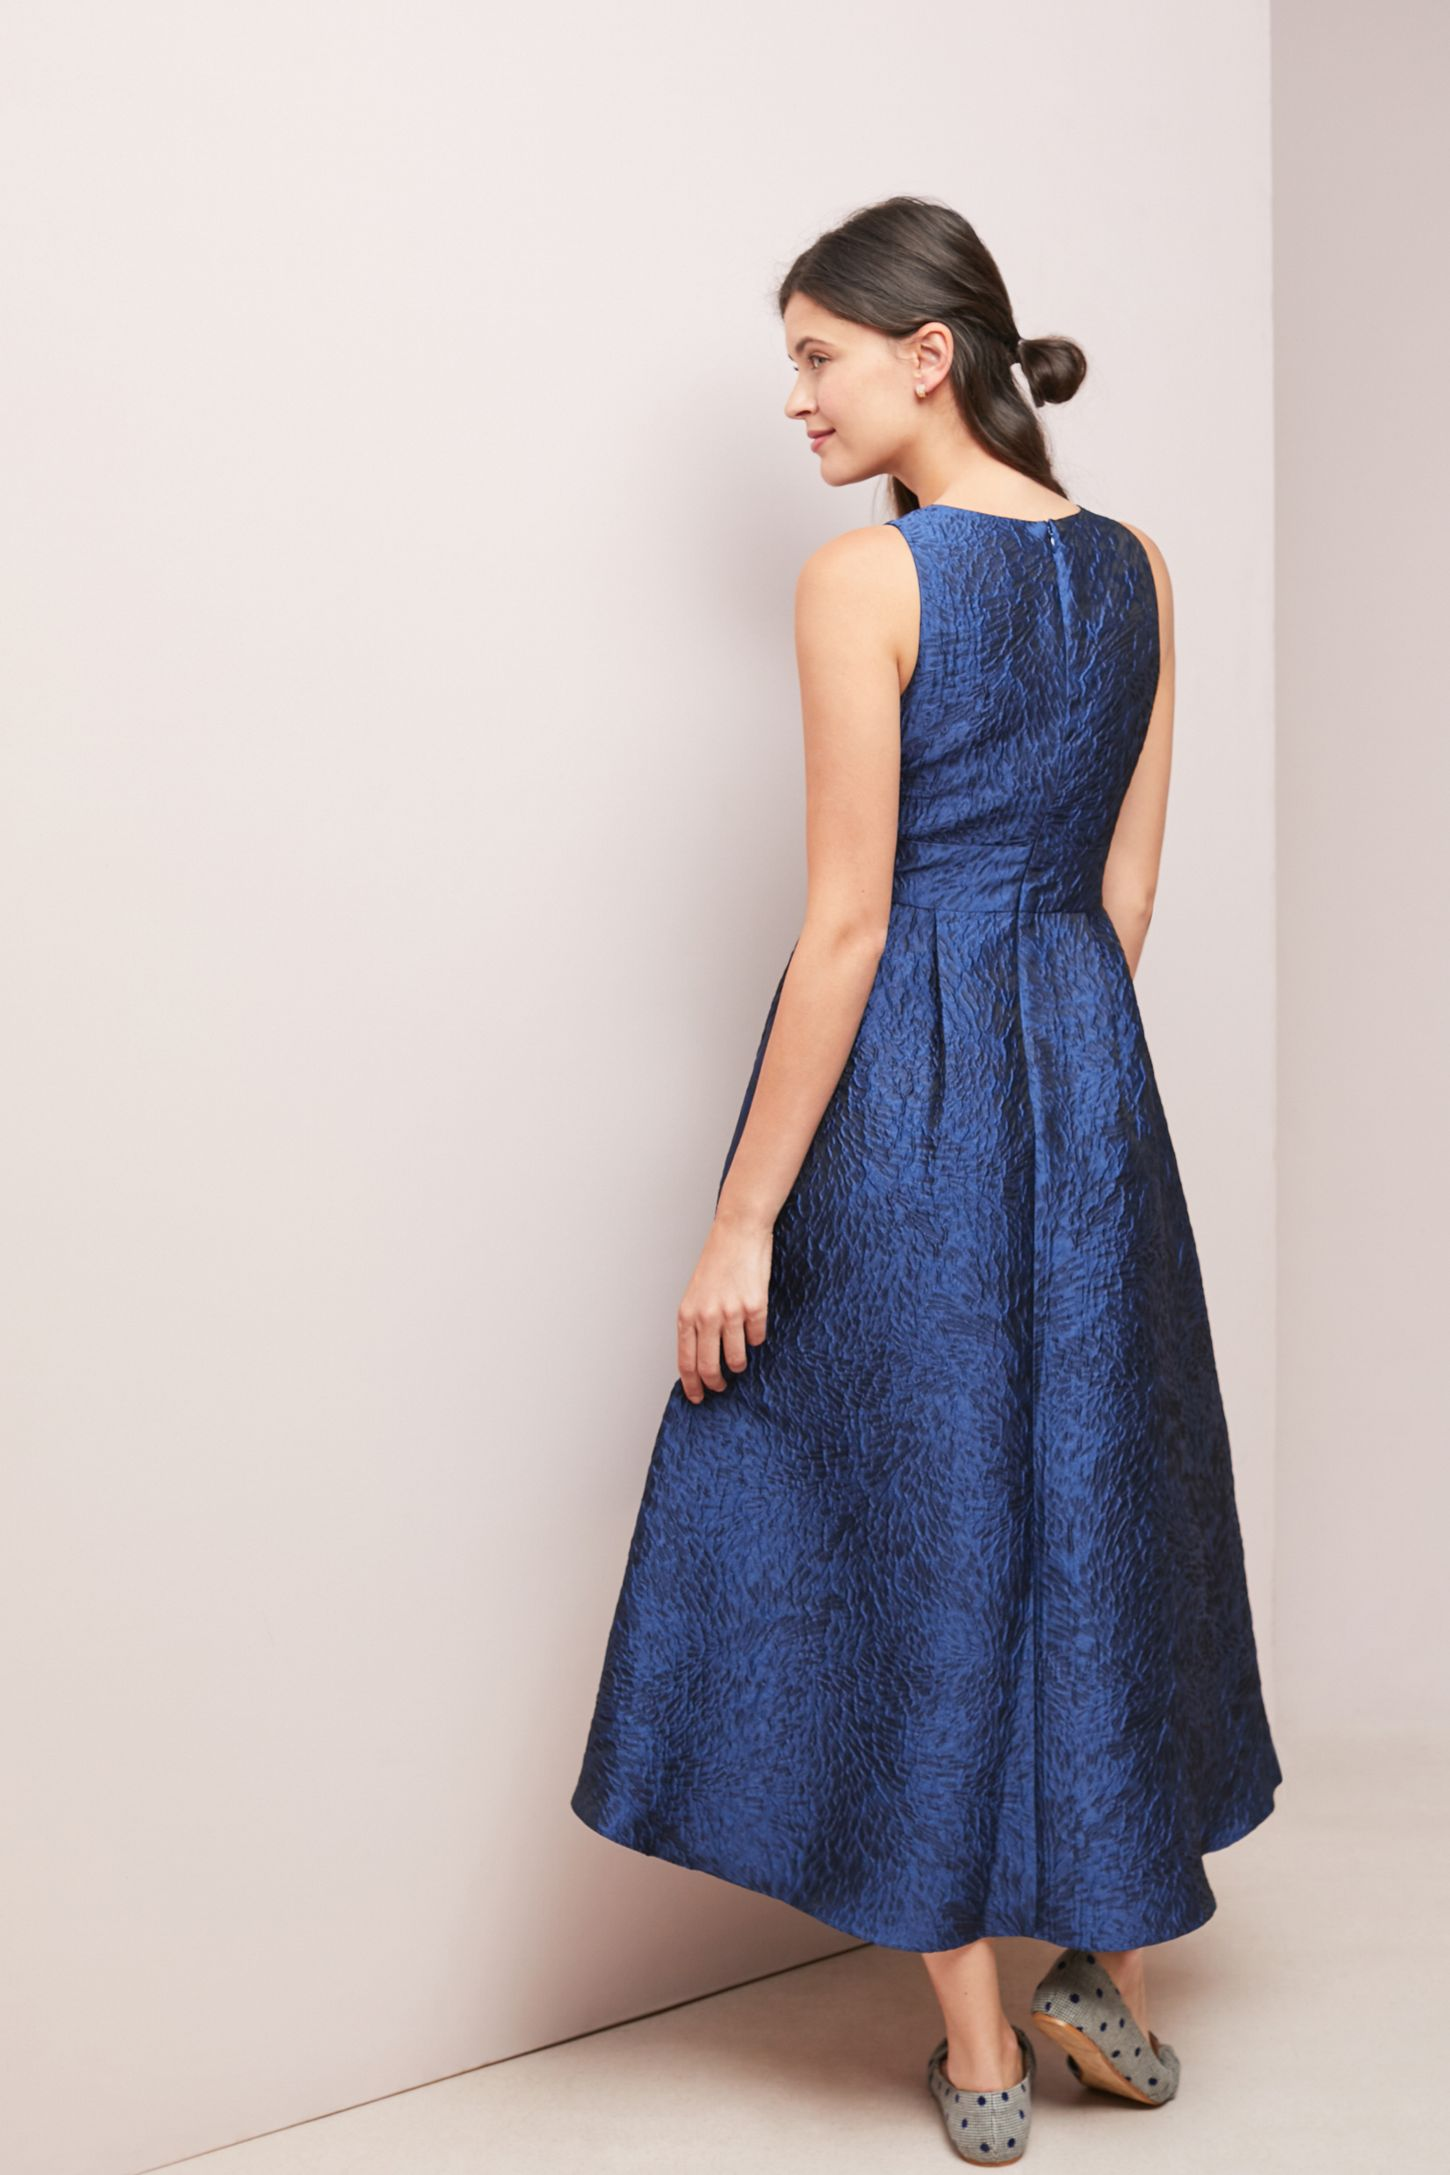 Shoshanna Textured Ball Gown | Anthropologie